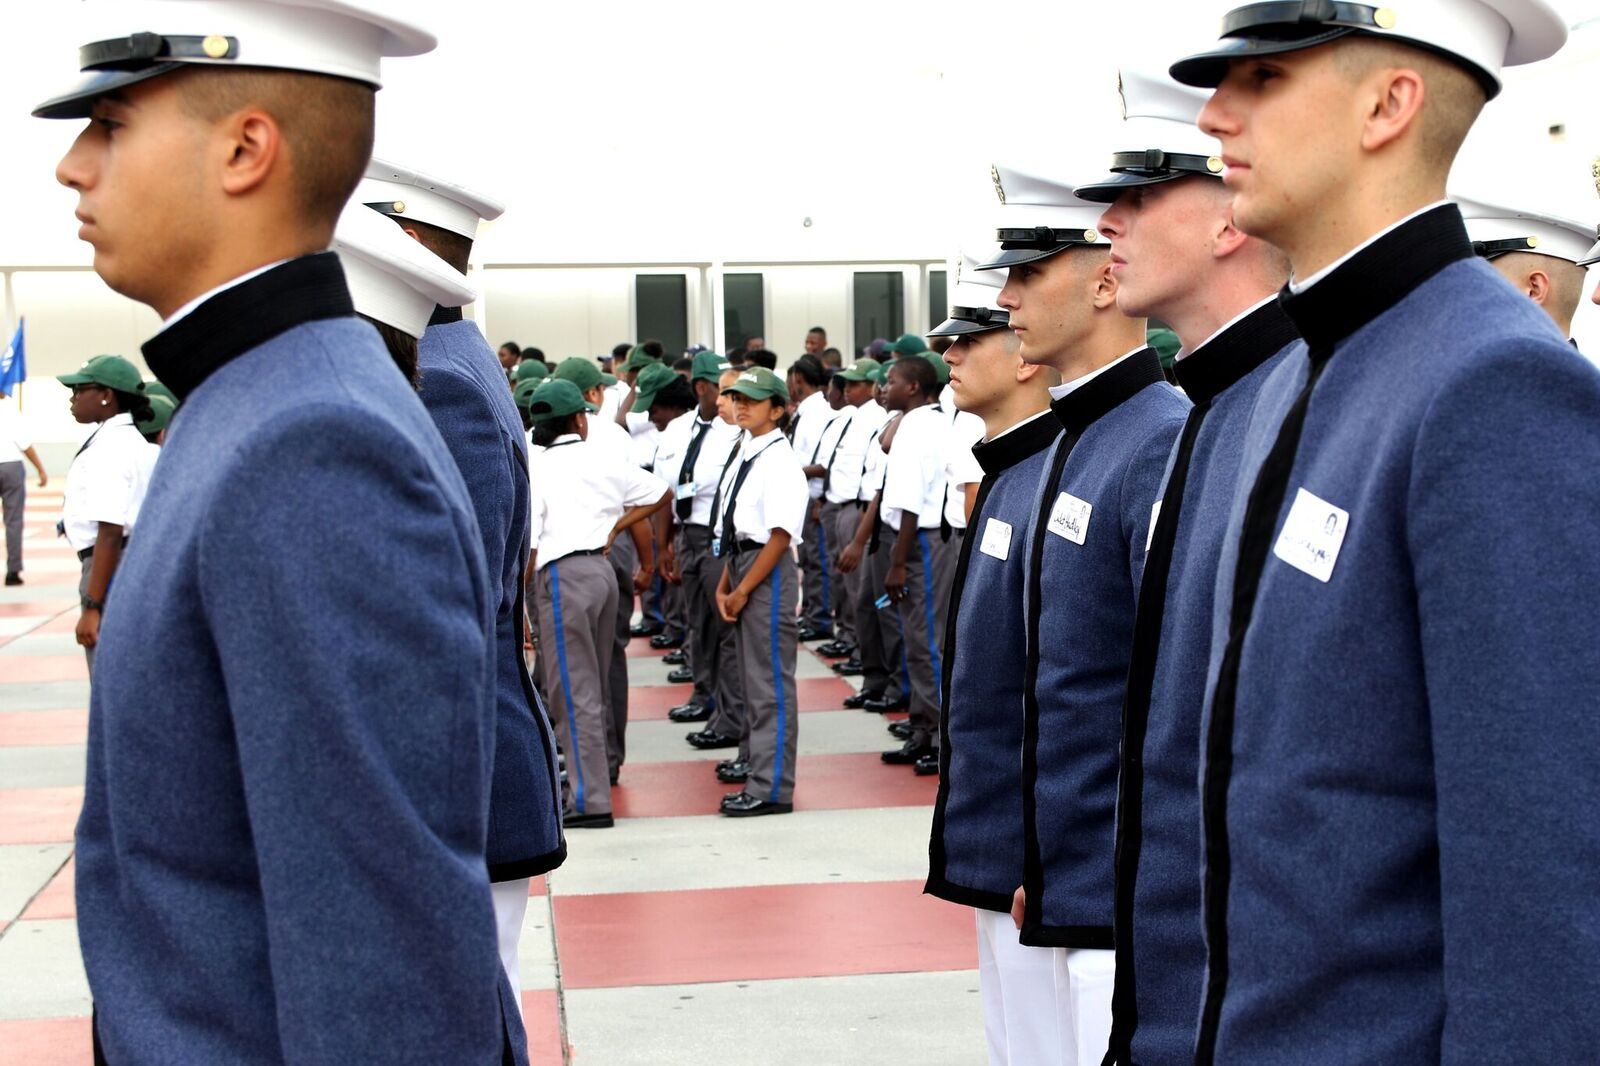 Citadel cadets join Military Magnet Academy cadets for a review parade